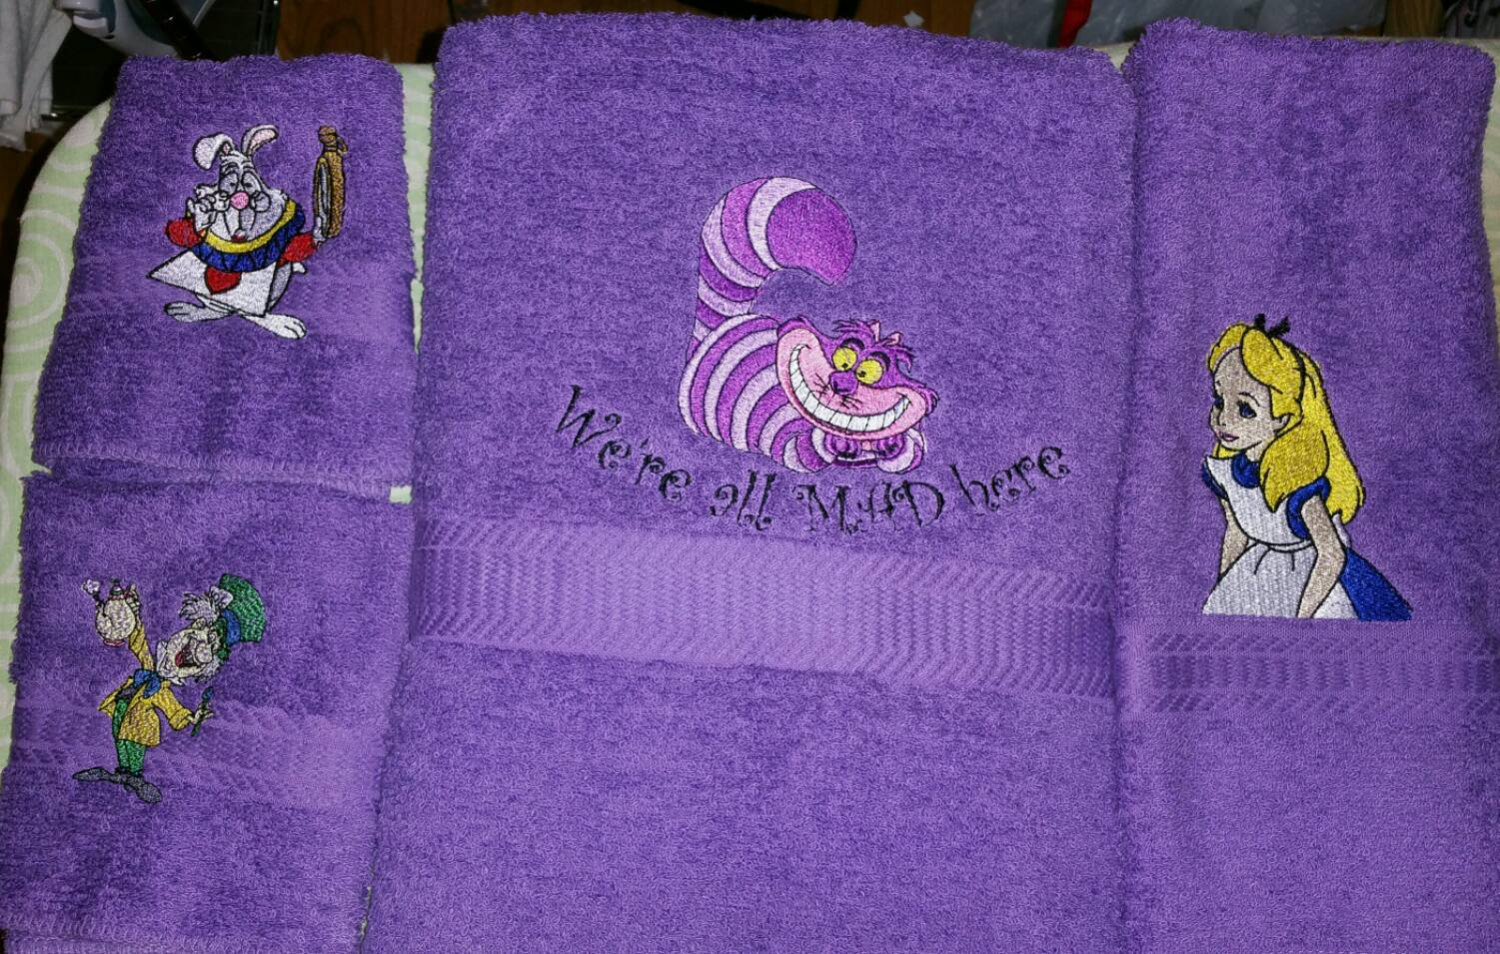 Alice in wonderland characters on embroidered purple bath towels